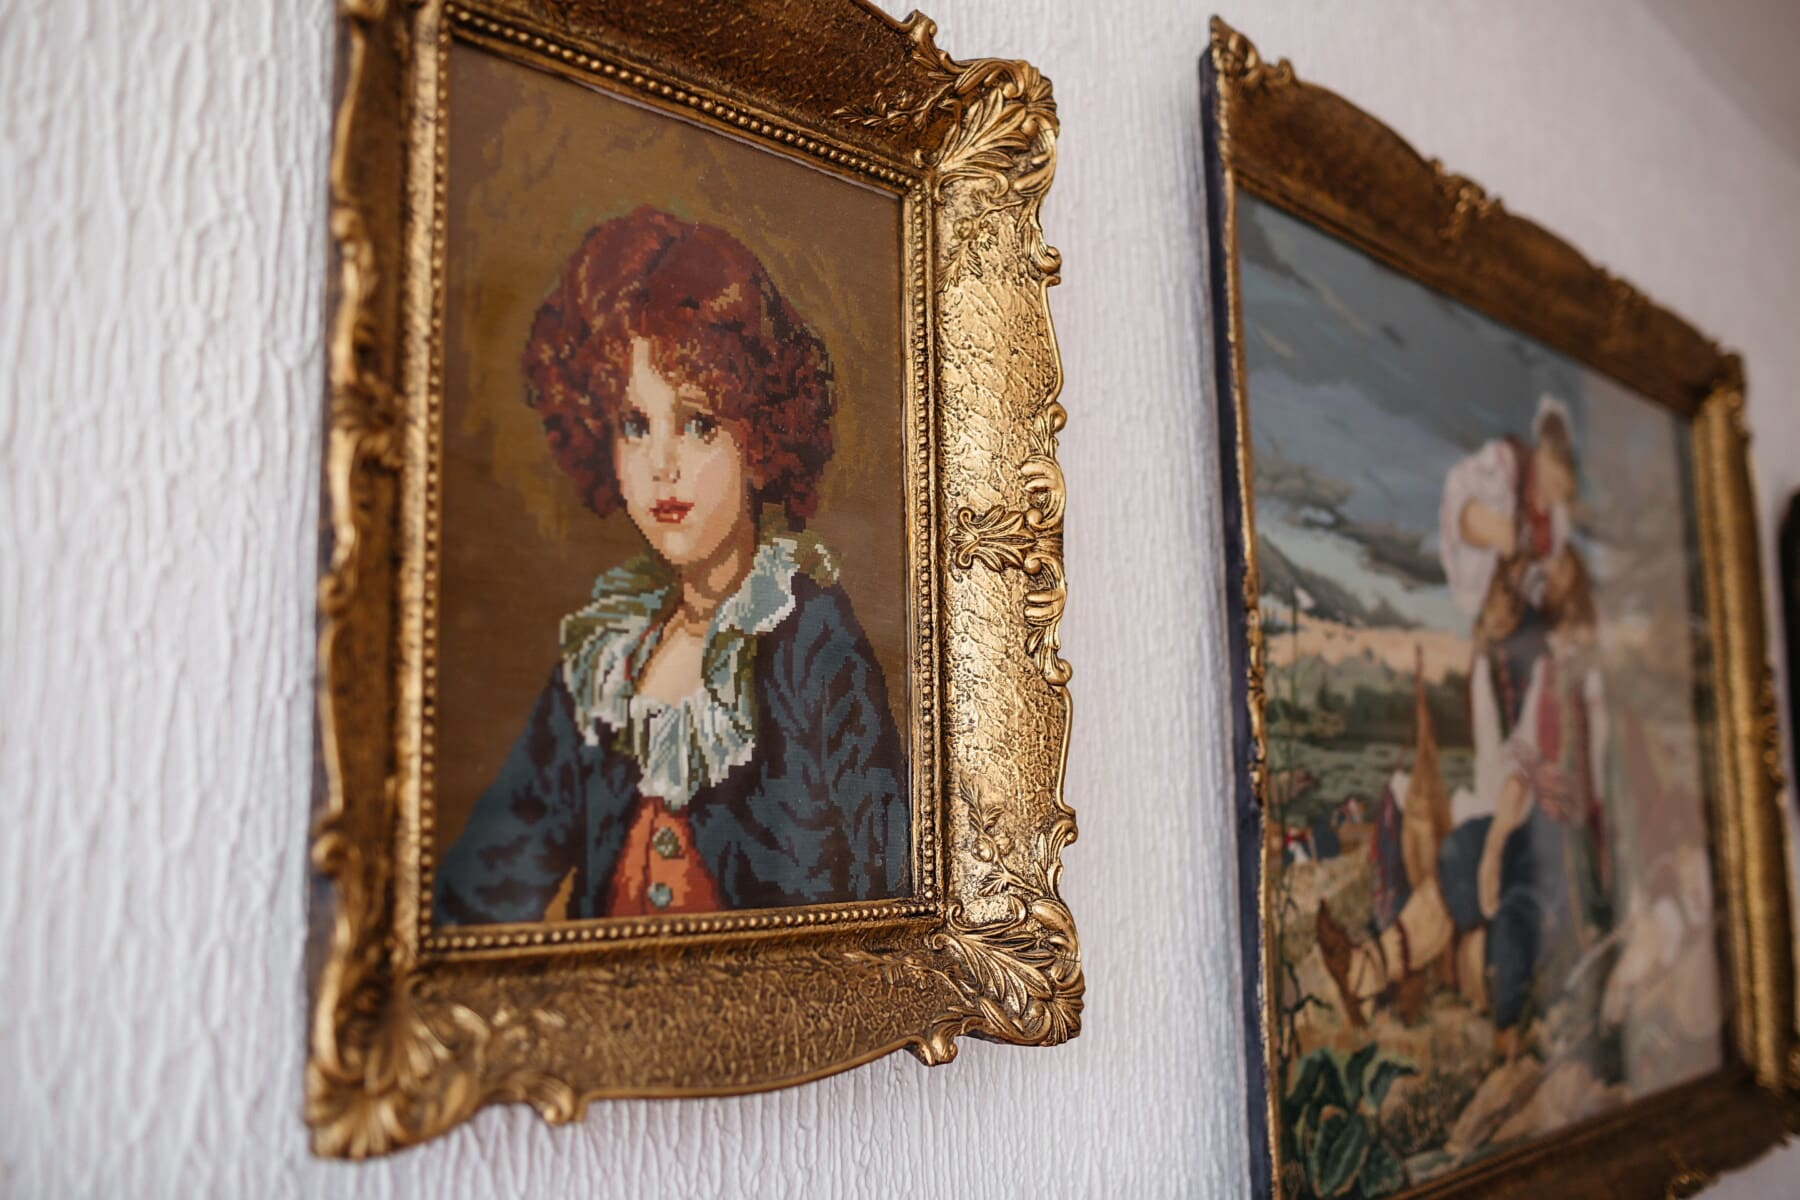 frame, portrait, art, baroque, traditional, handmade, vintage, old, decoration, antique